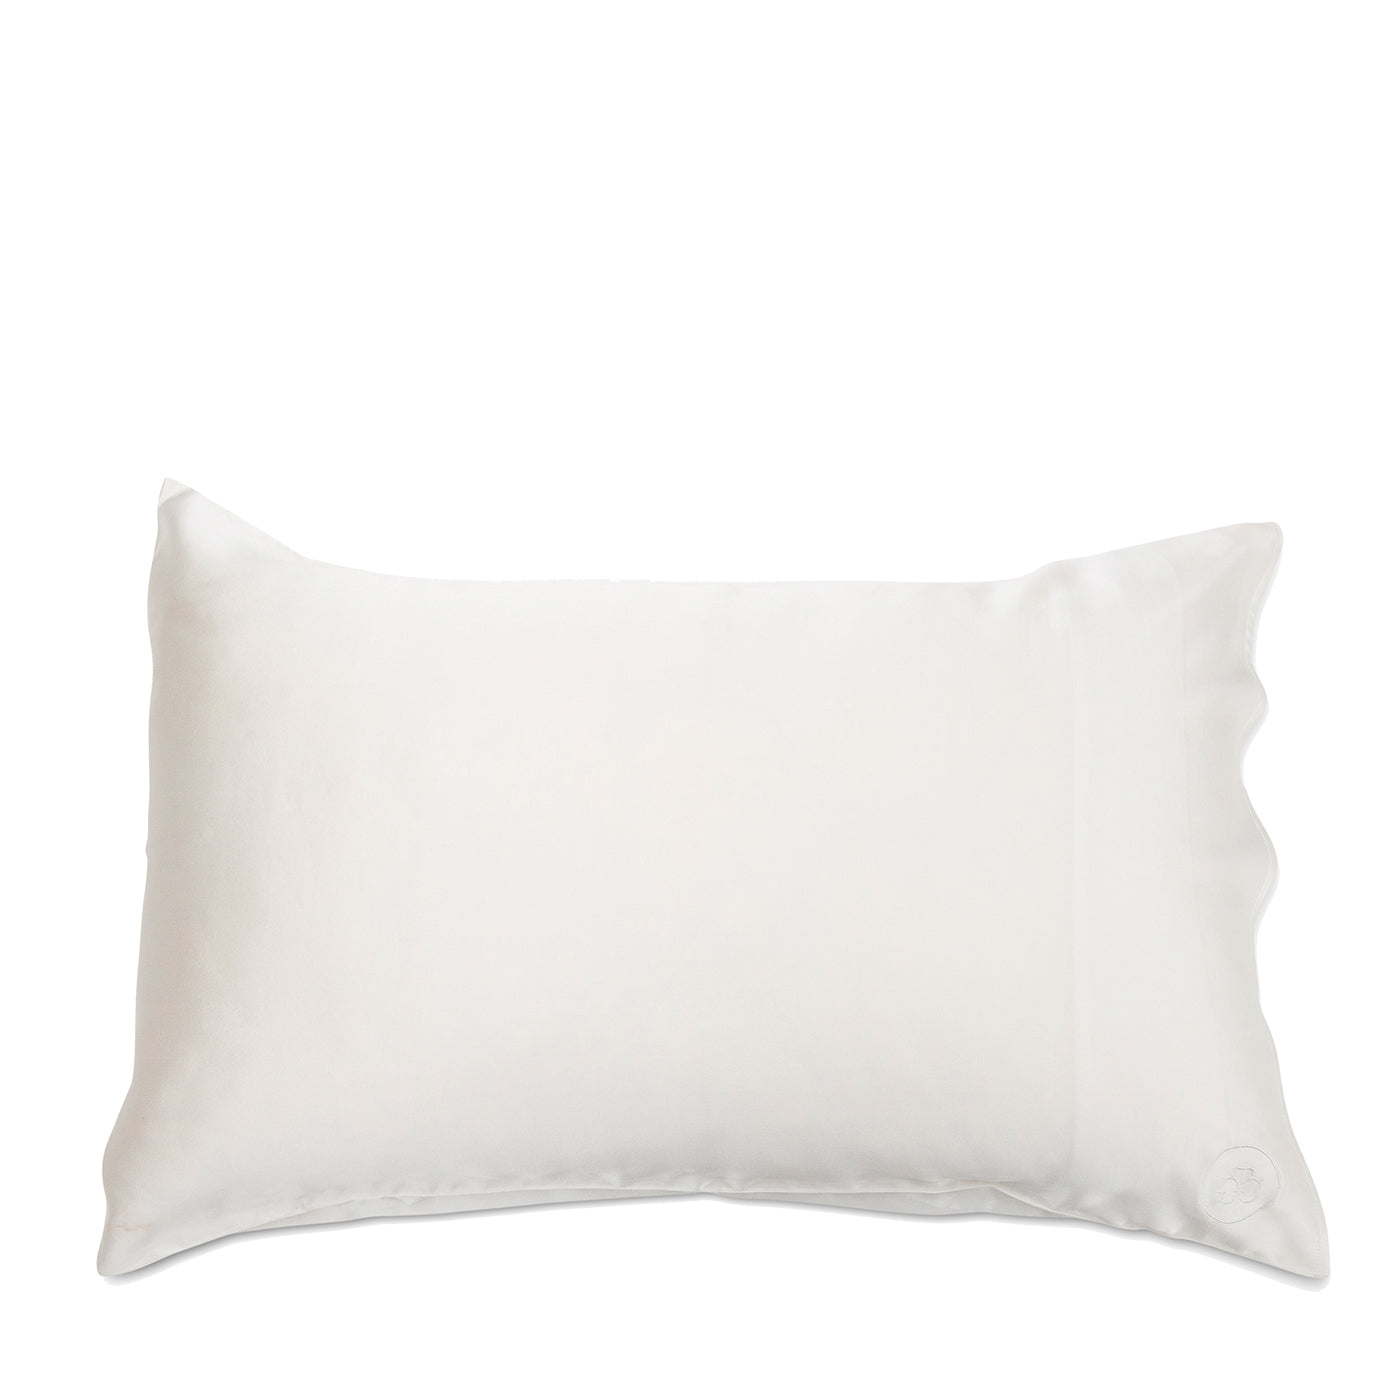 The Goodnight Co Silk Pillowcase Natural